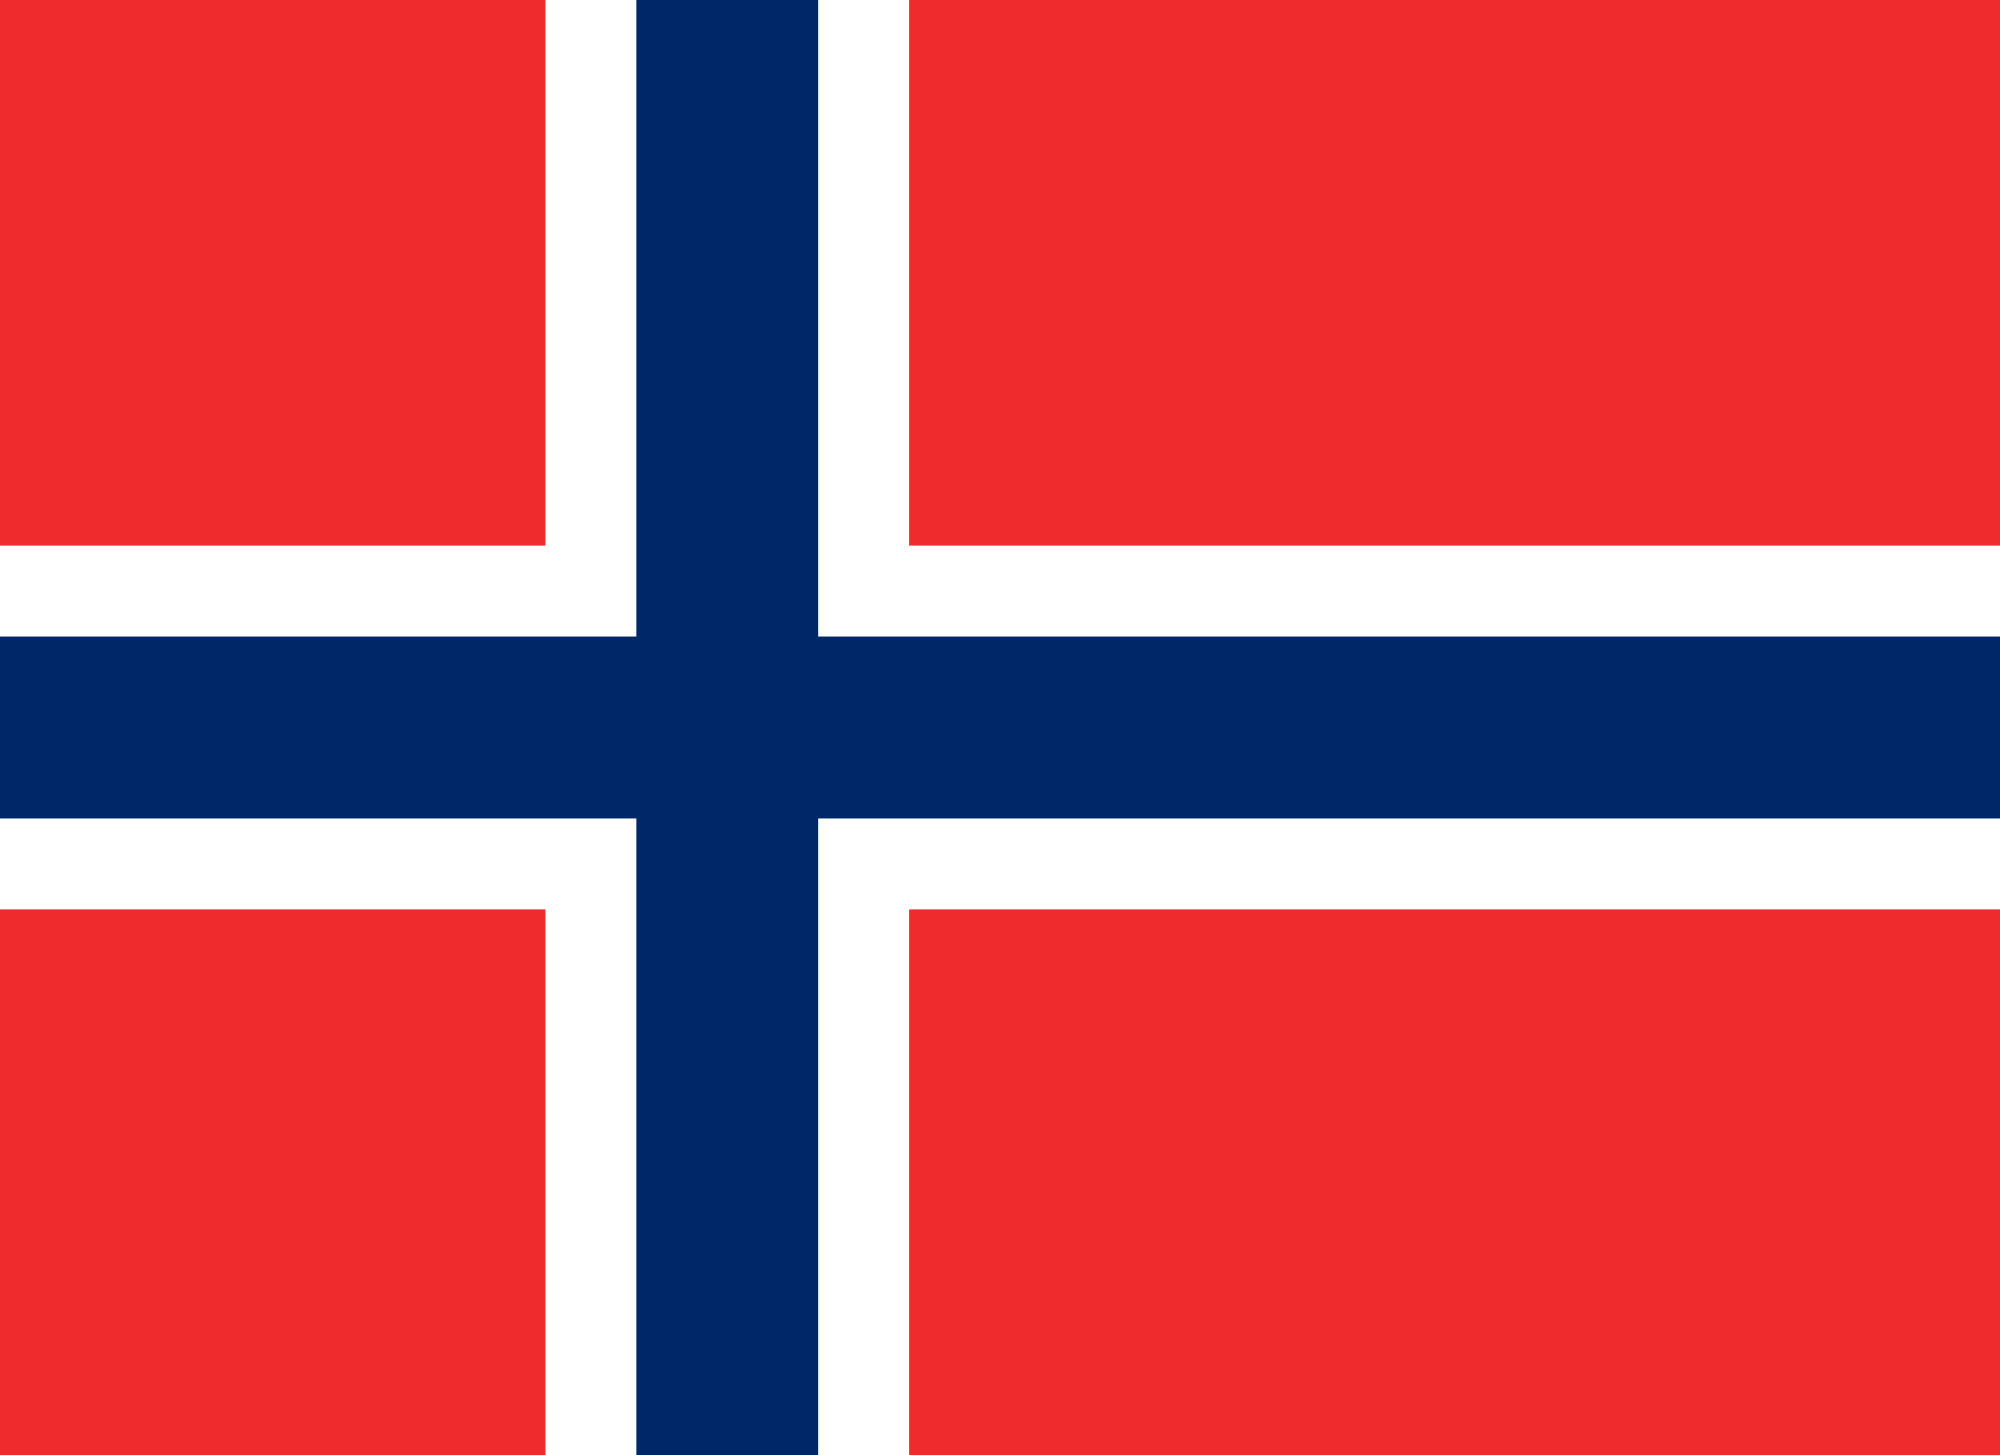 Pin By Lionel Vera On Flags Of The World Norway Country Norway Flag Flags Of The World